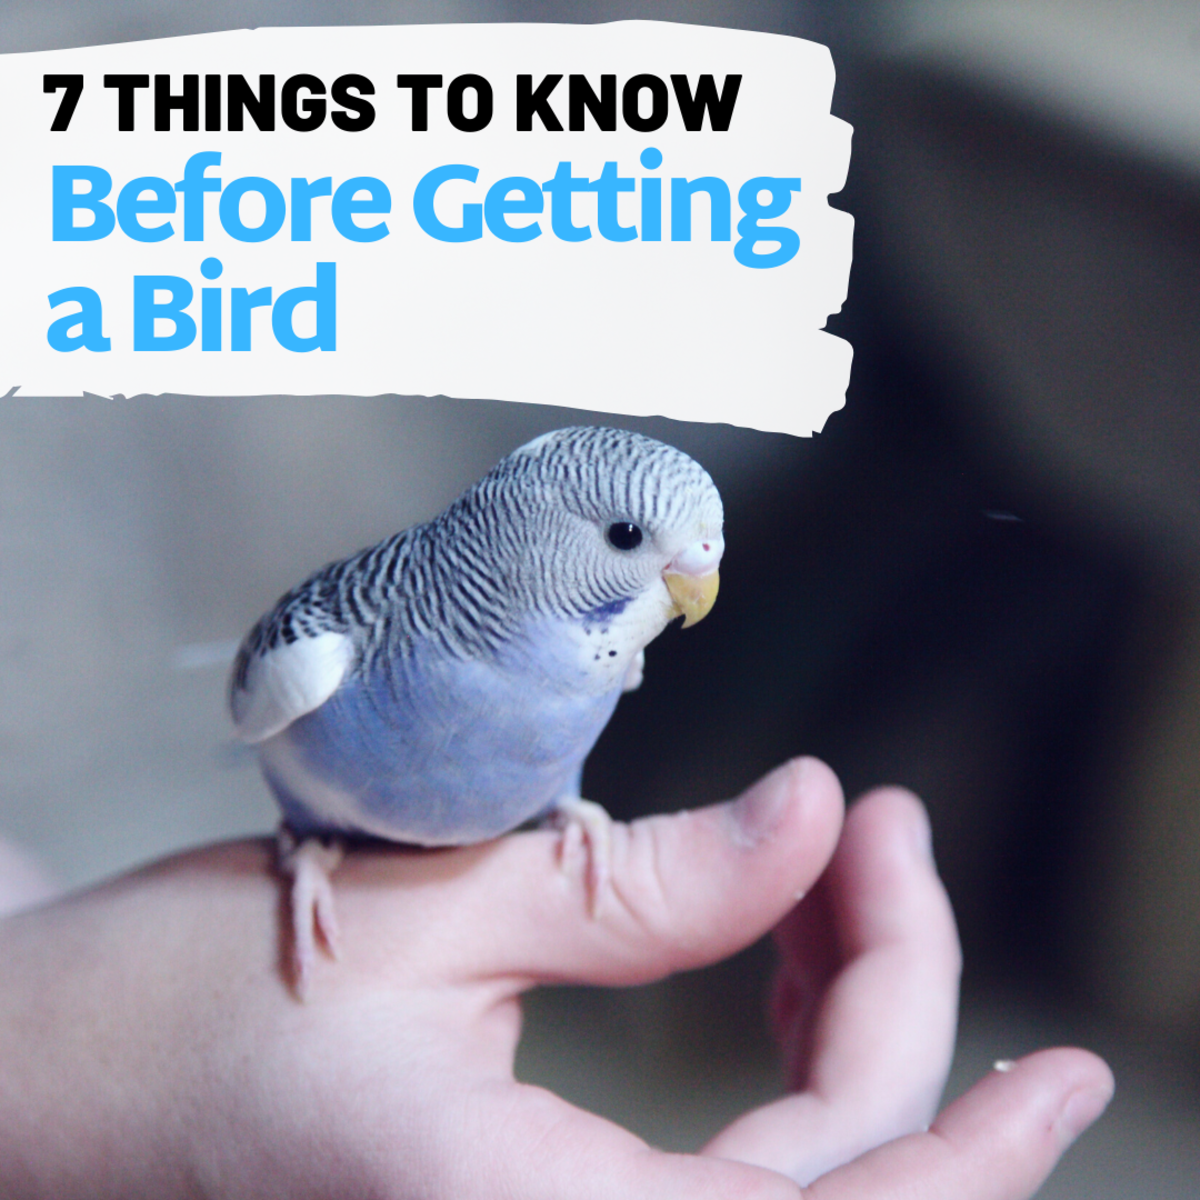 Why You Should Carefully Consider Getting a Pet Bird